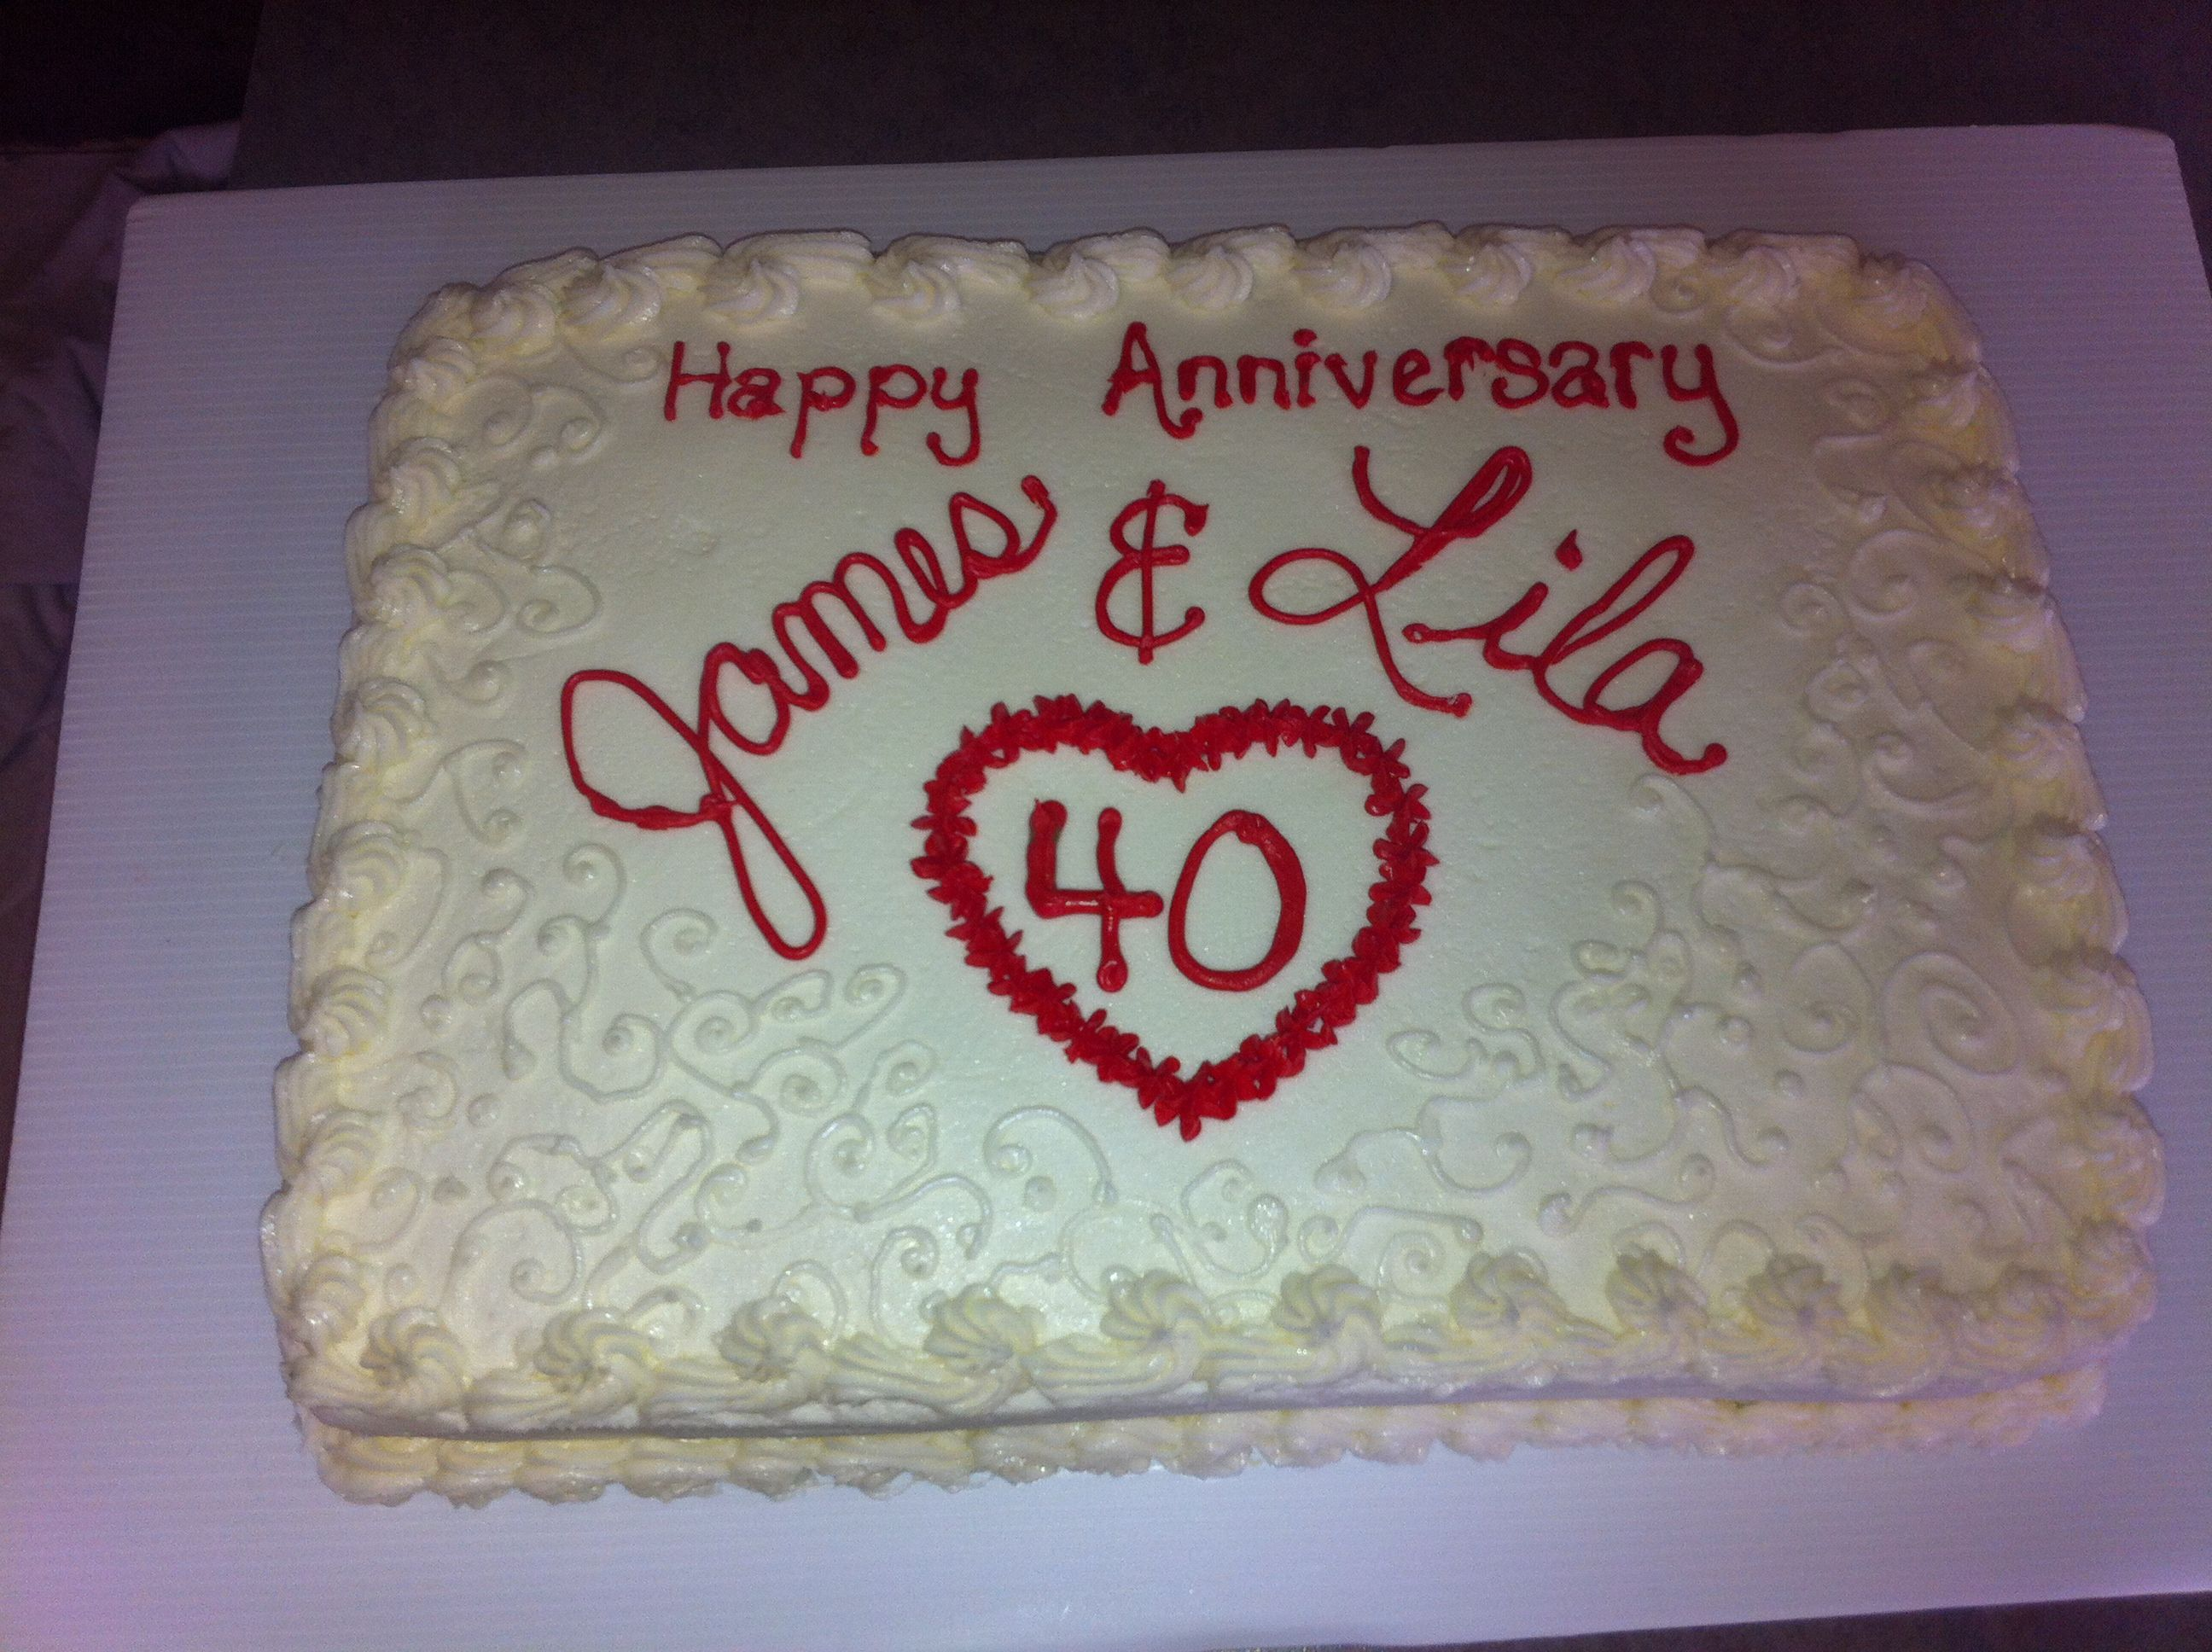 40th Anniversary Sheet Cake With Images 40th Anniversary Cakes